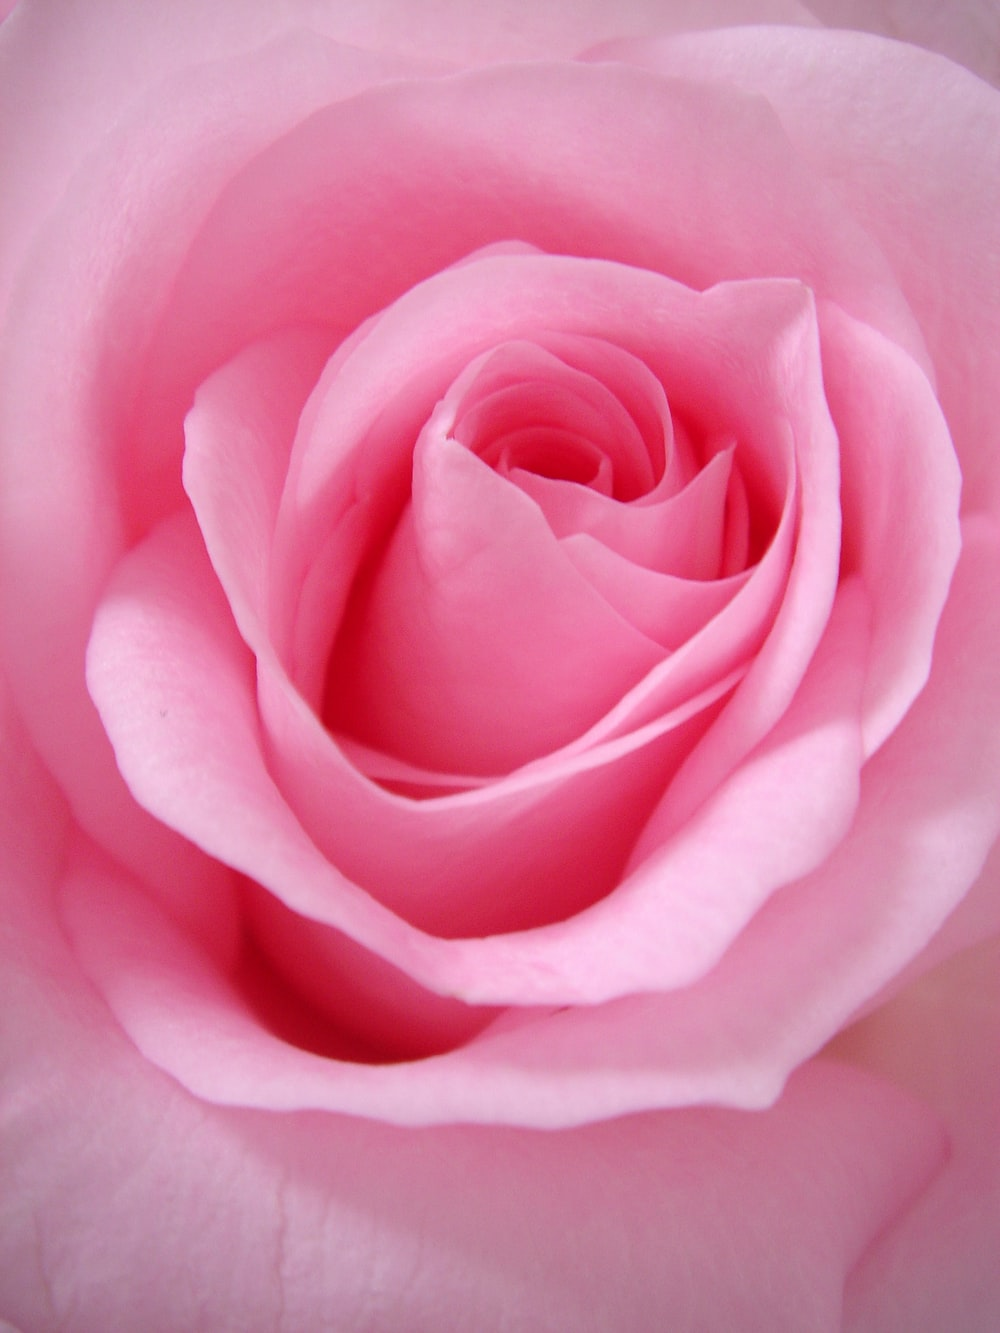 Rose Photo By Mike Castro Demaria Madmikefr On Unsplash